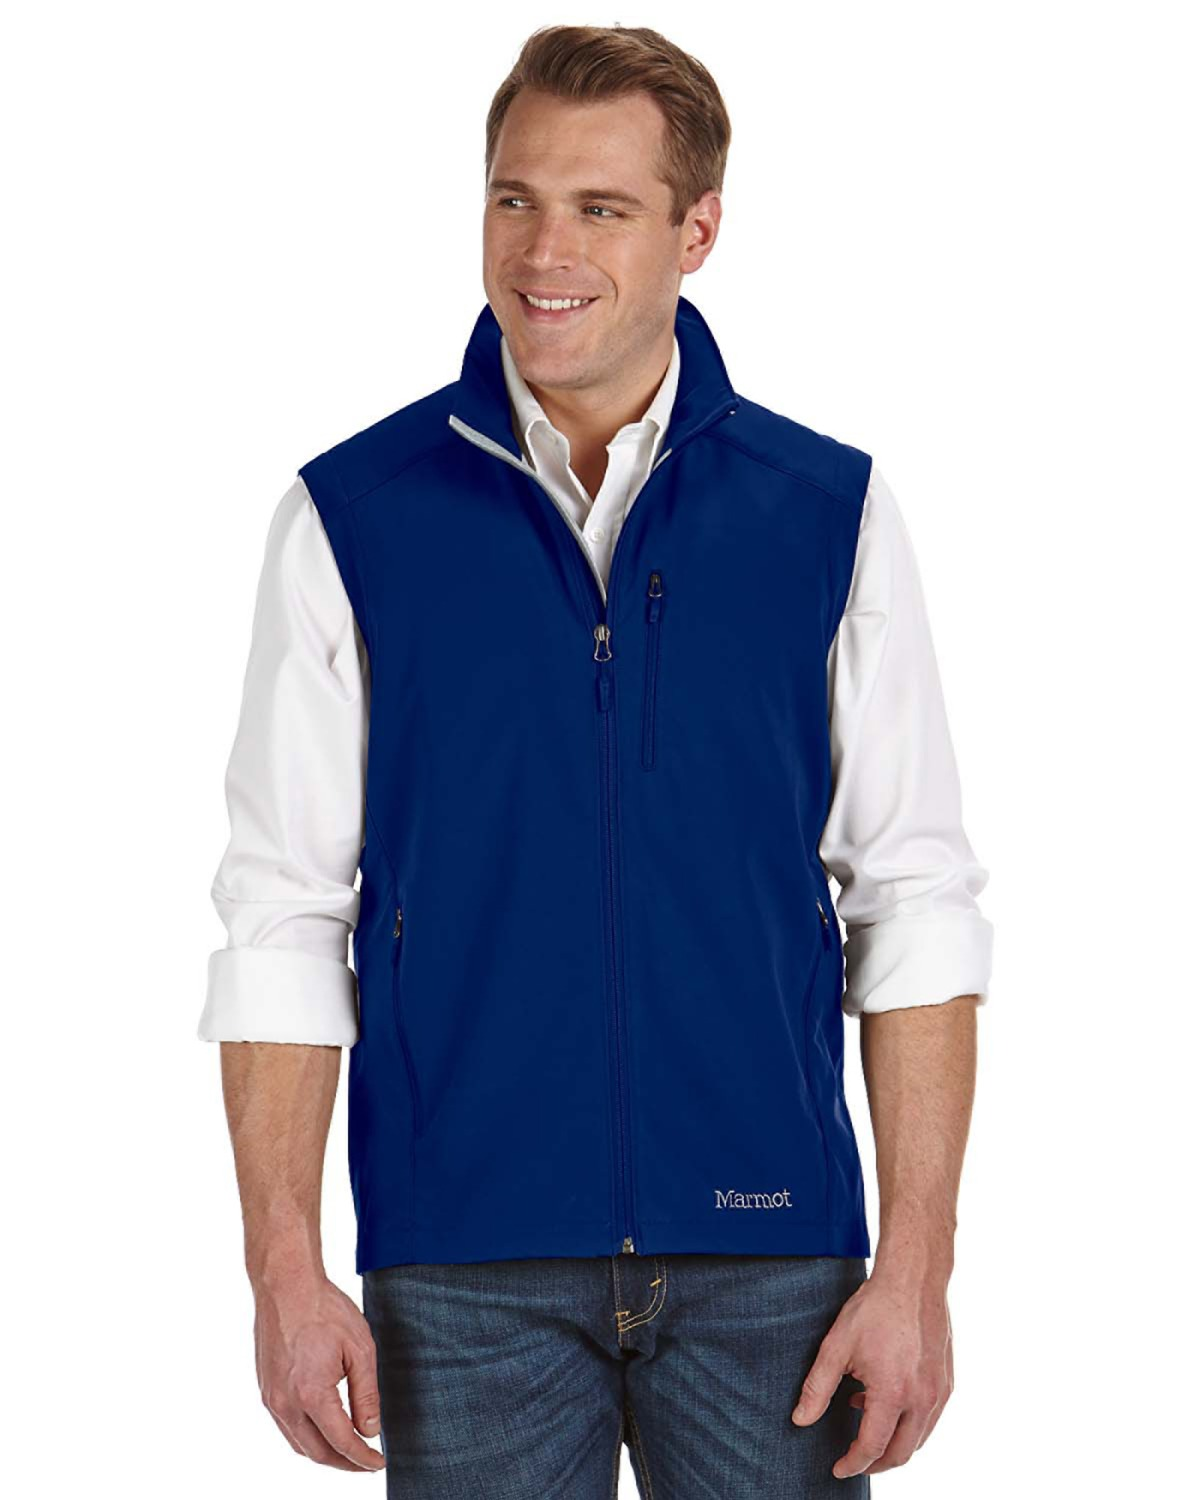 Marmot - 98070, Men's Approach Vest - Logo Masters International